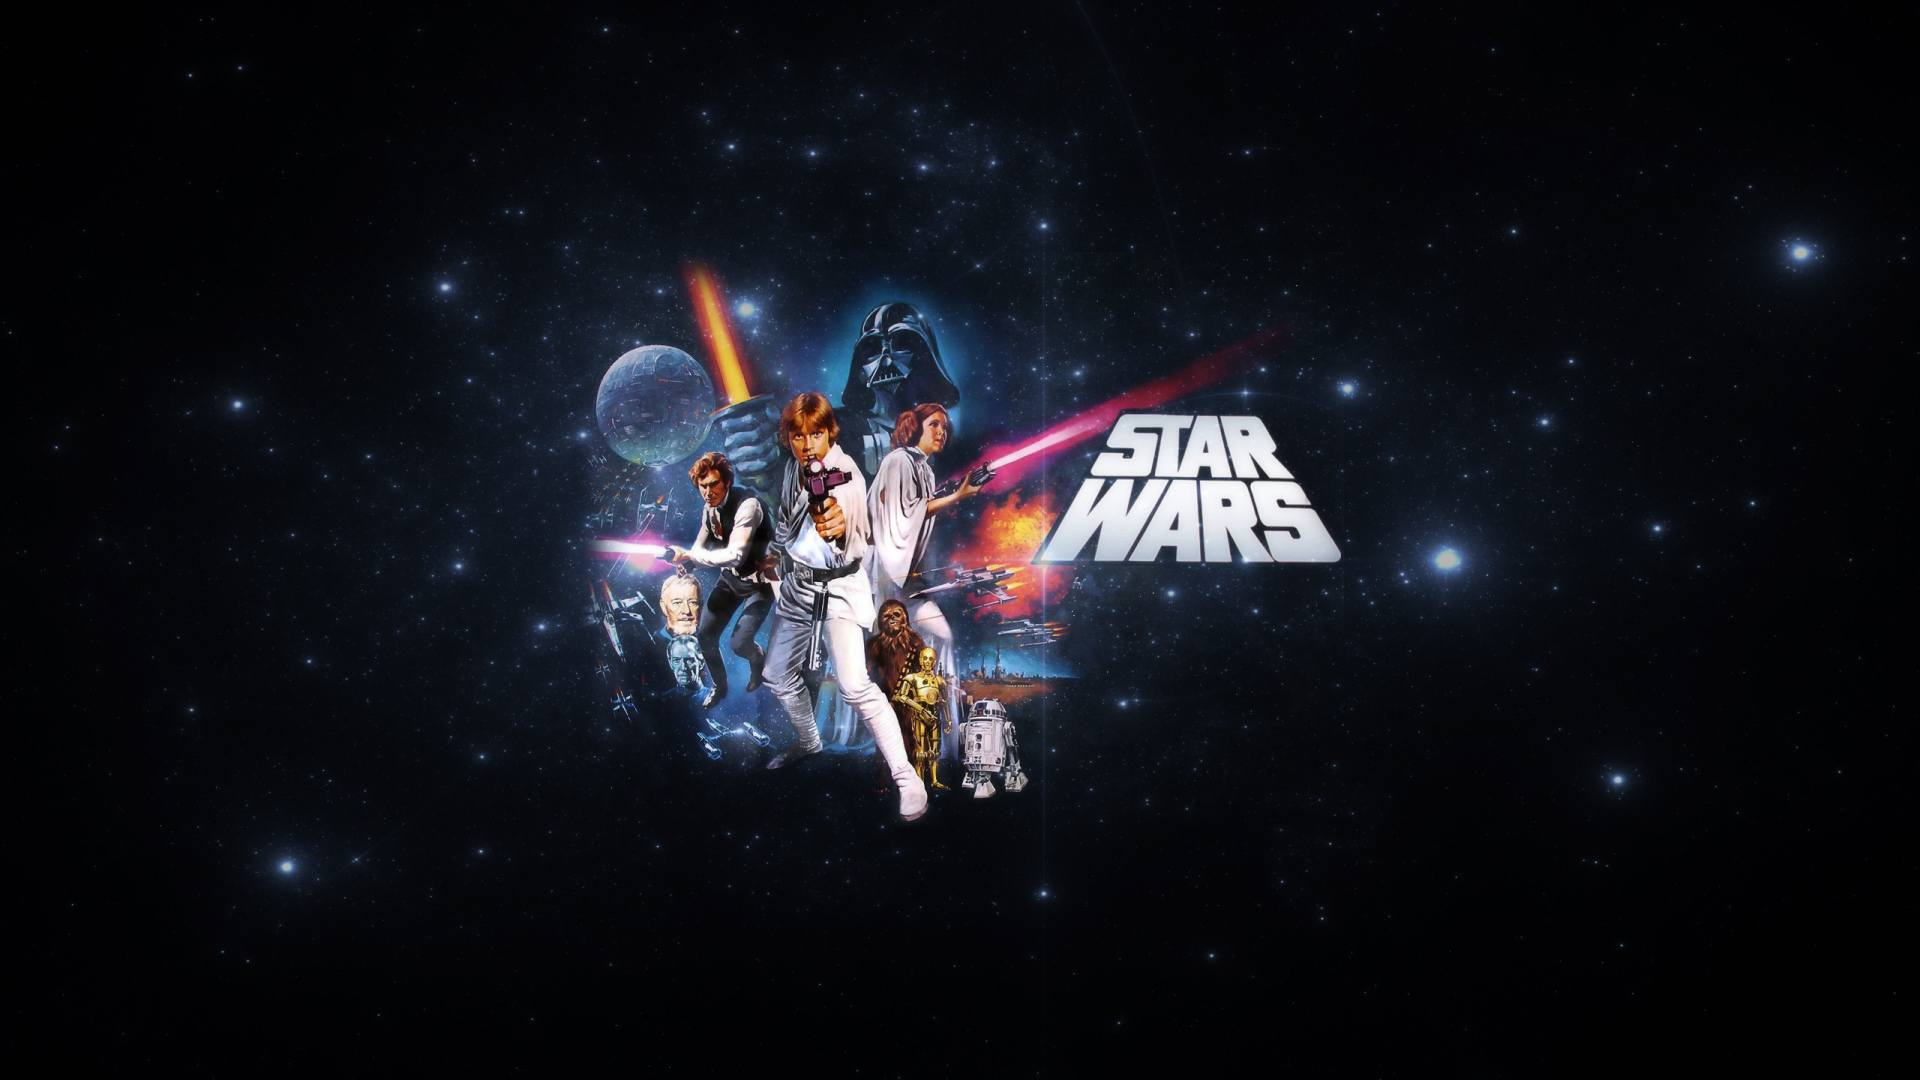 Star Wars Pc Wallpapers Wallpaper Cave